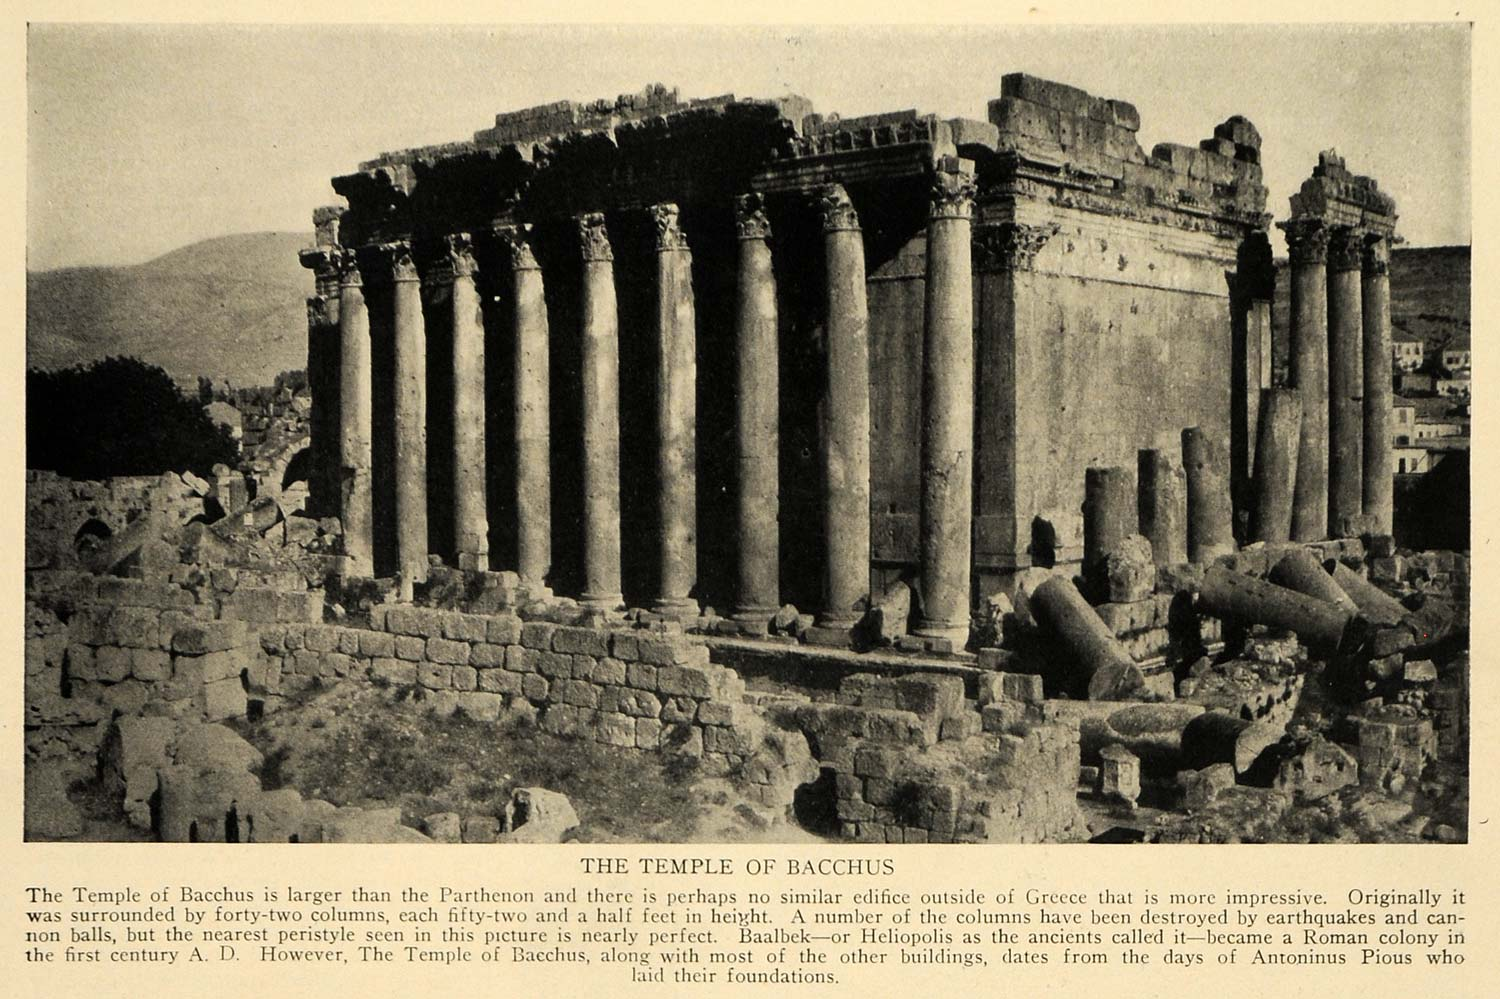 1928 Print Greece Ancient Ruins Bacchus Temple Baalbek ORIGINAL HISTORIC TRV1